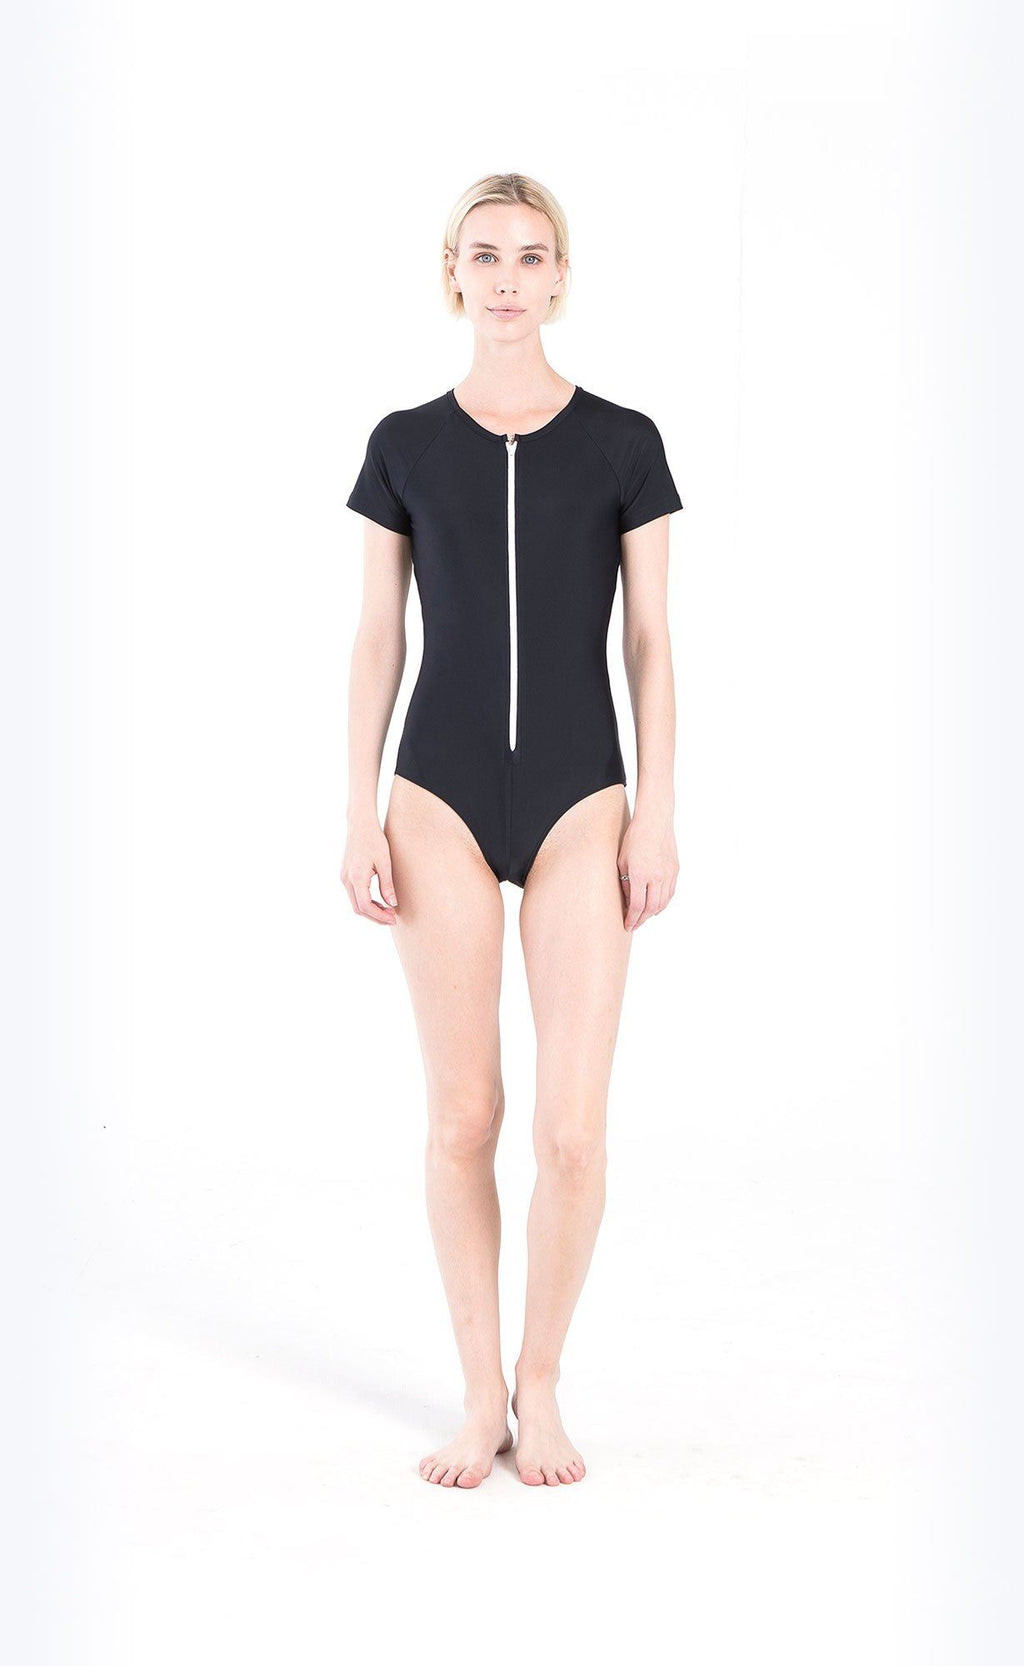 Short-Sleeved Swimsuit - Cover